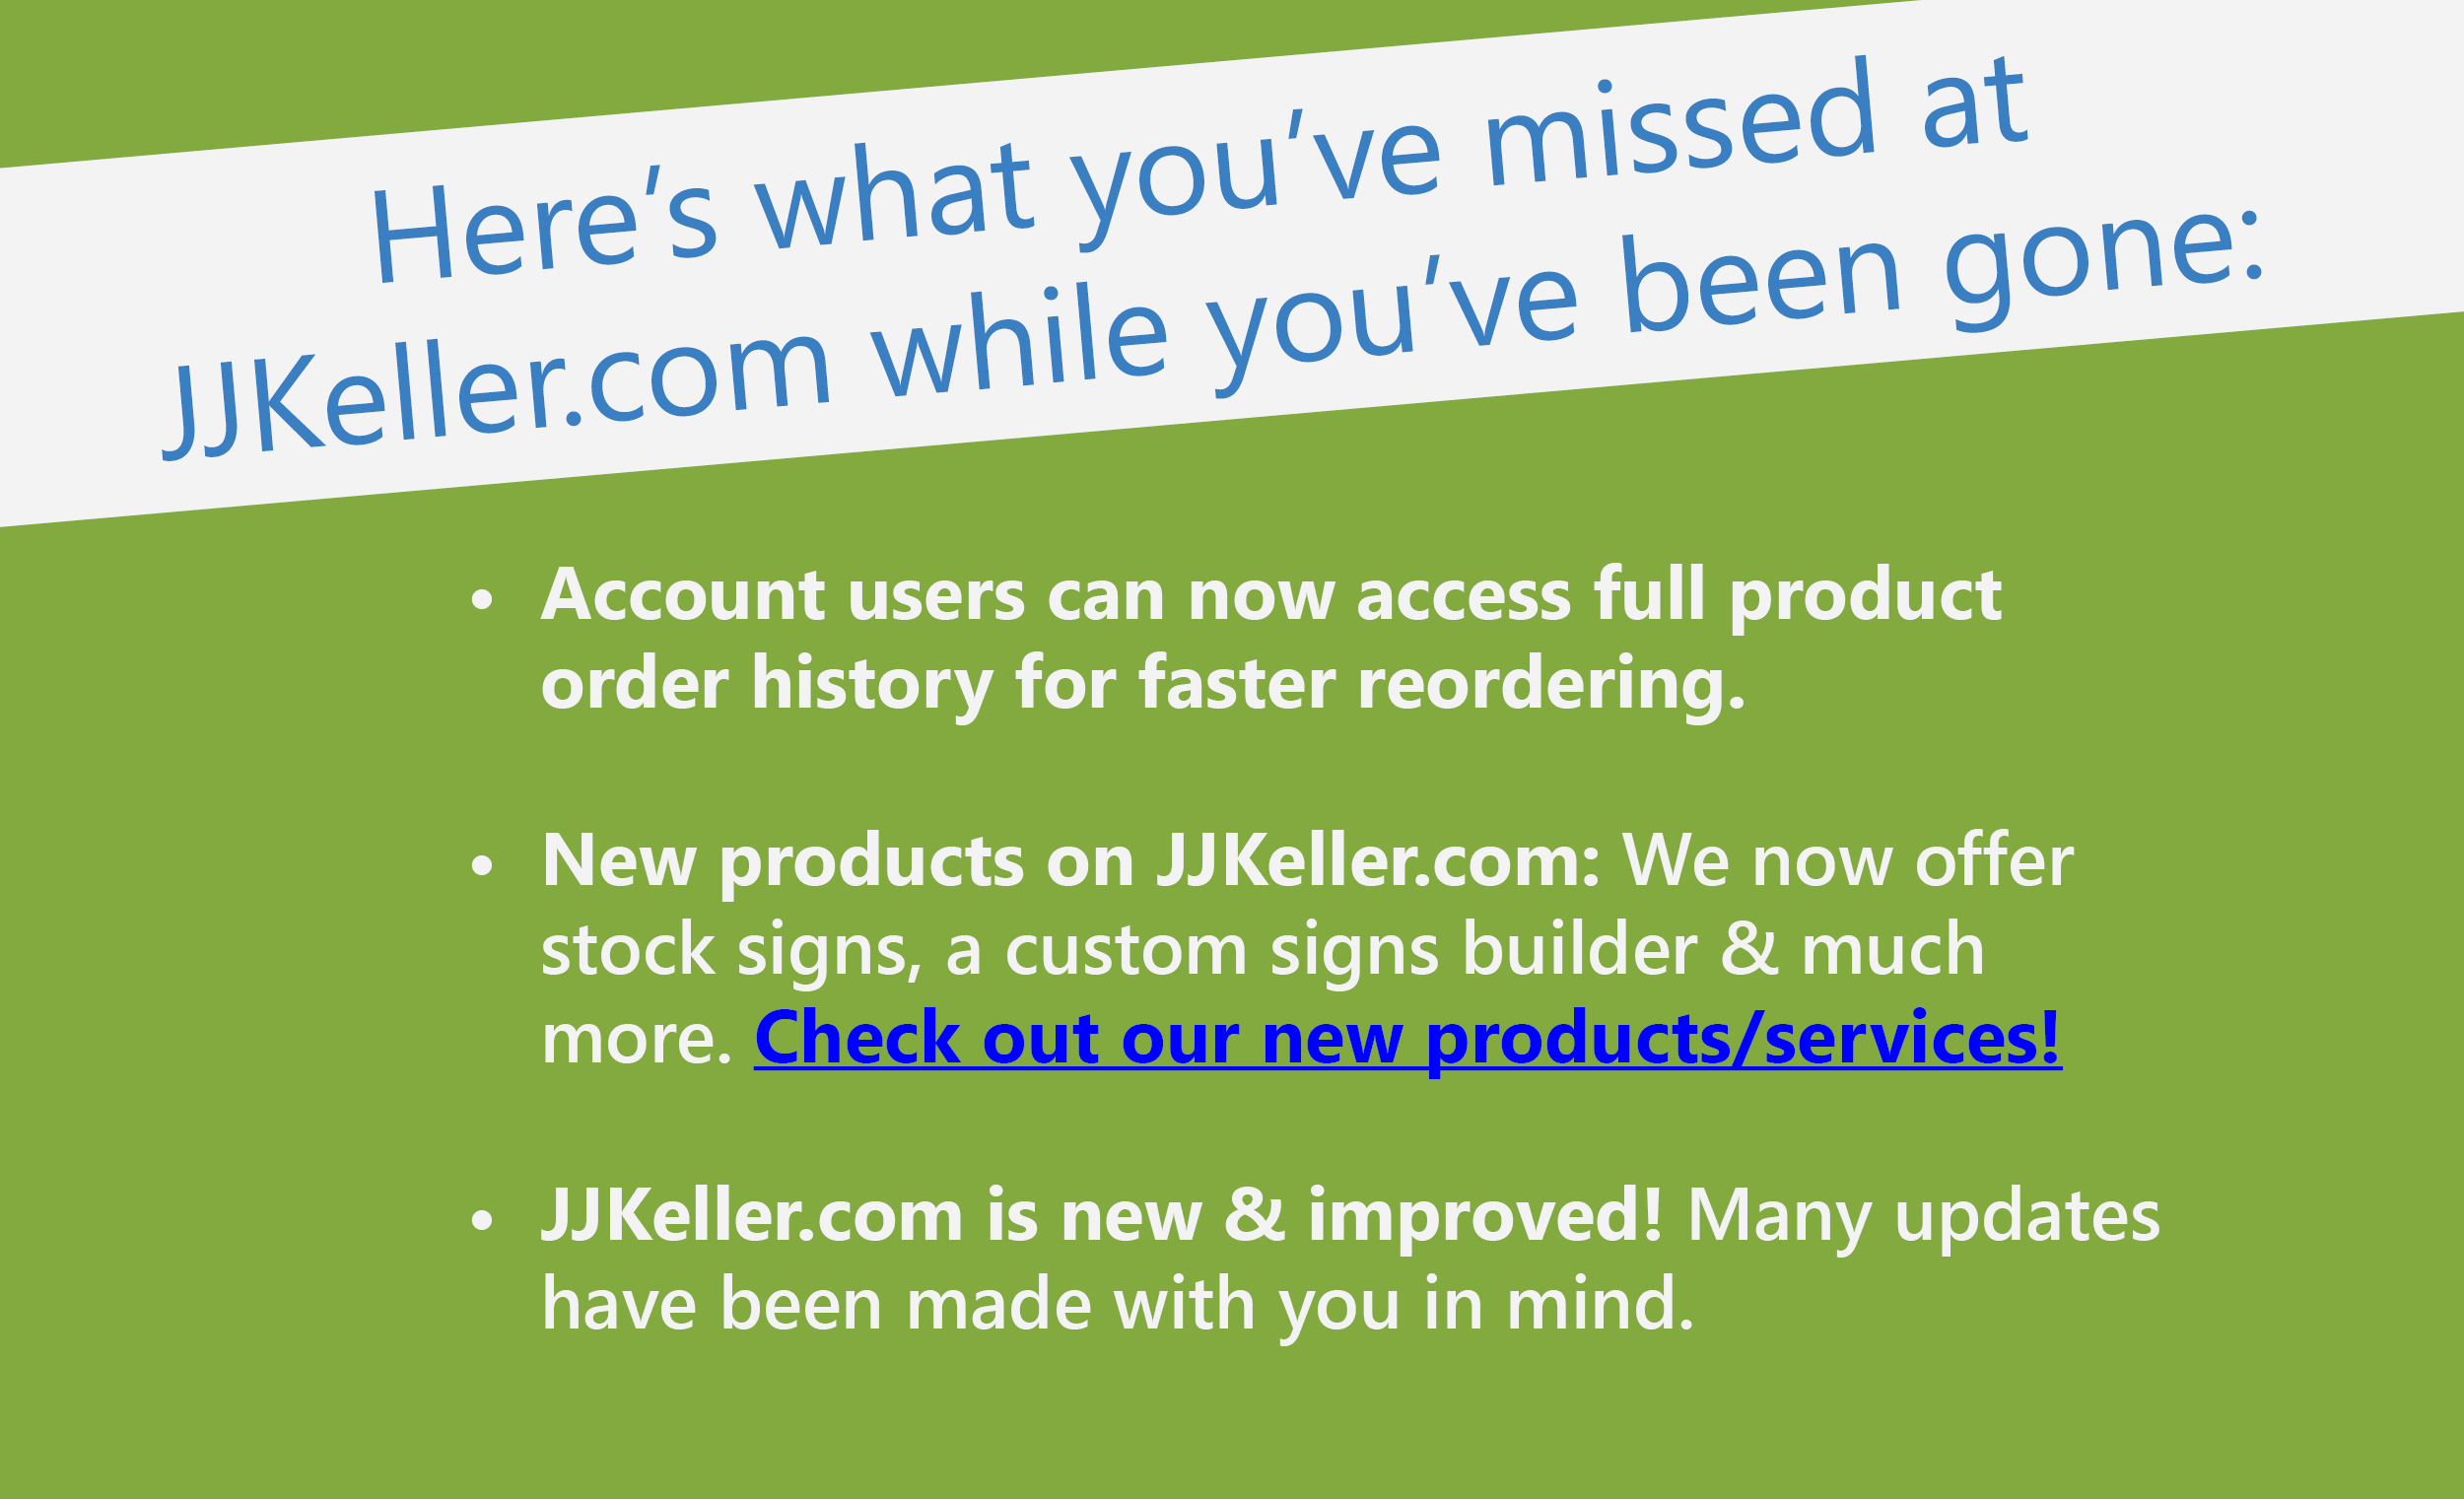 New Improvements at JJKeller.com: Account users can now access full product order history for faster reordering. New products on JJKeller.com: We now offer stock signs, a custom signs builder & much more. Check out our new products/services! JJKeller.com is new & improved! Many updates have been made with you in mind.